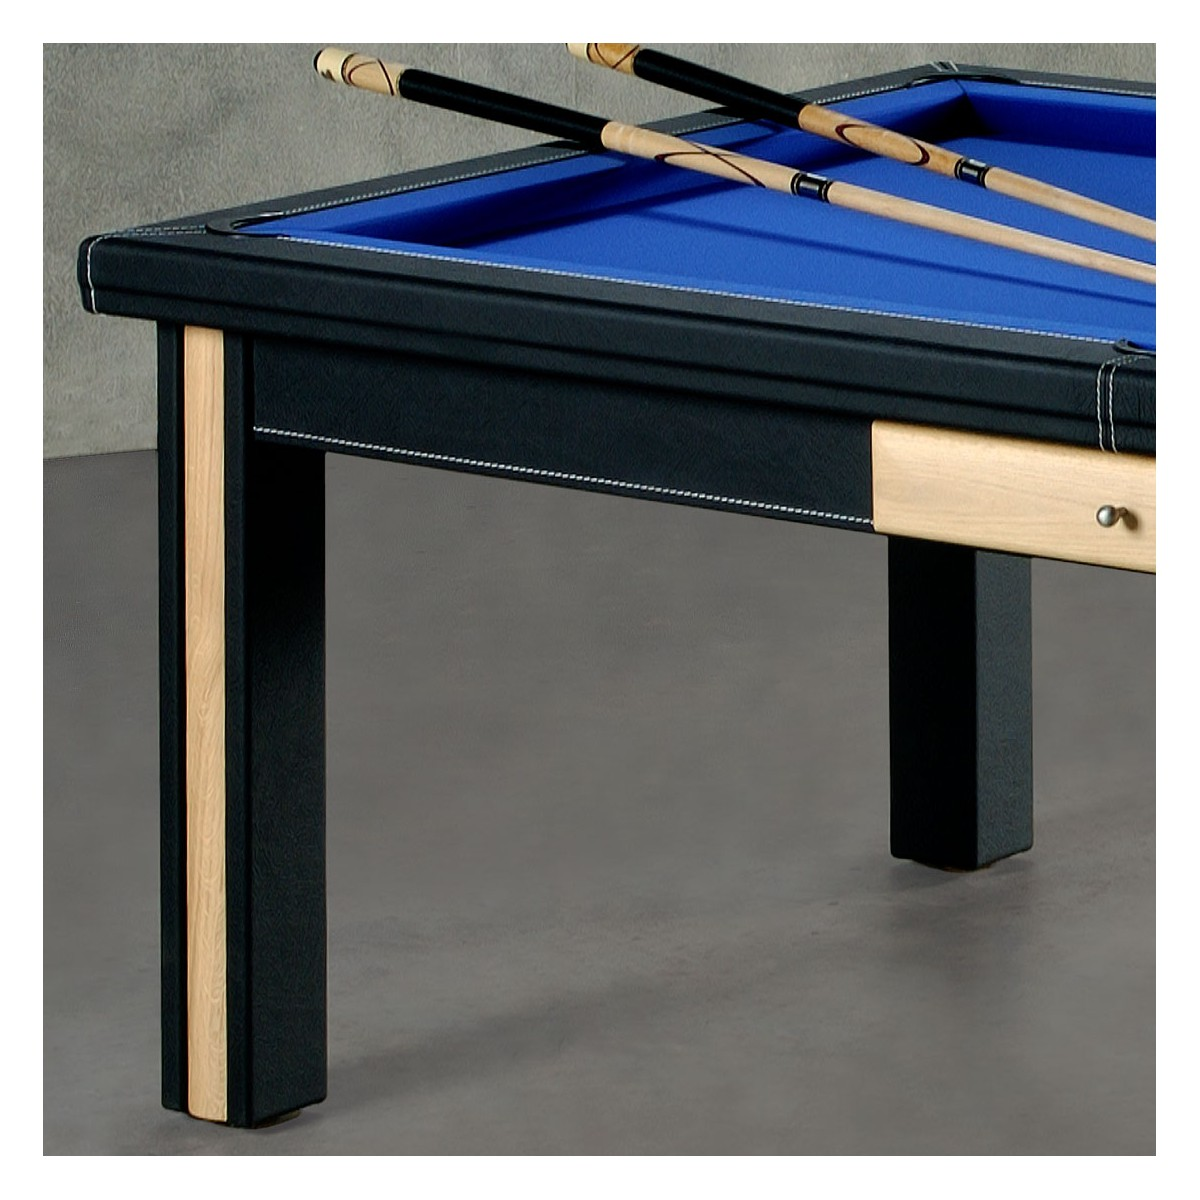 billard-convertible-table-paris02.jpg